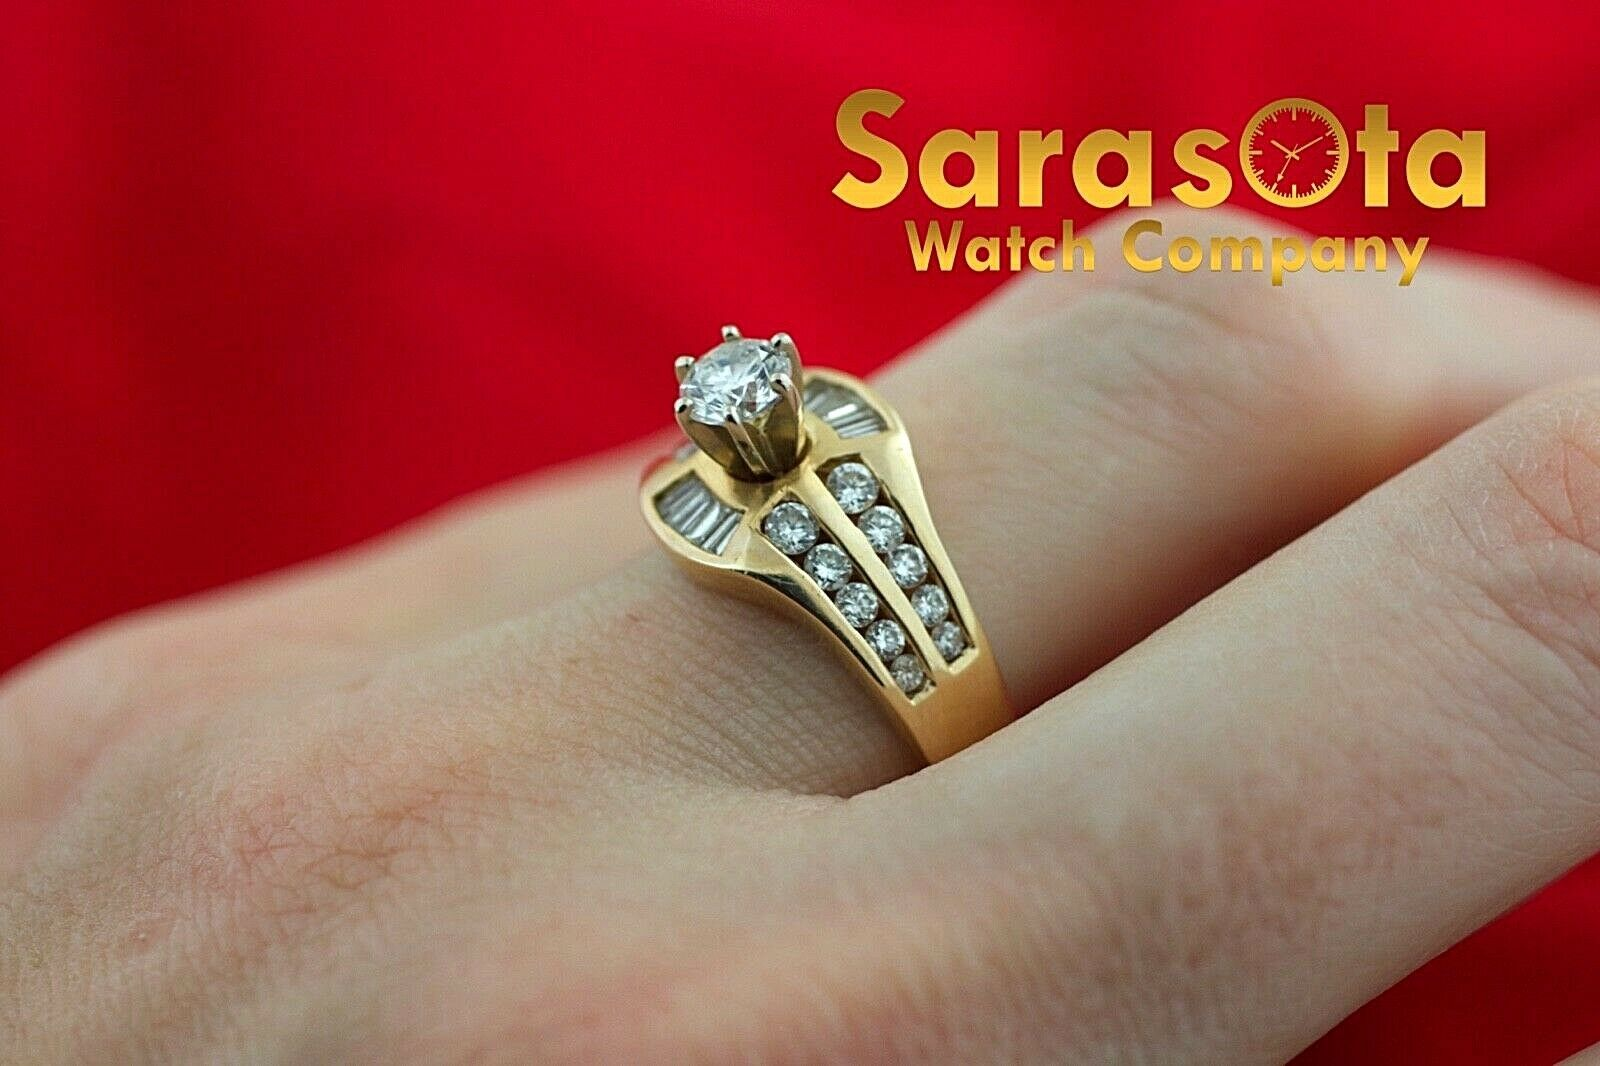 14k Yellow Gold 125ct Diamonds Solitaire with Accent Ring Size 75 132942110435 6